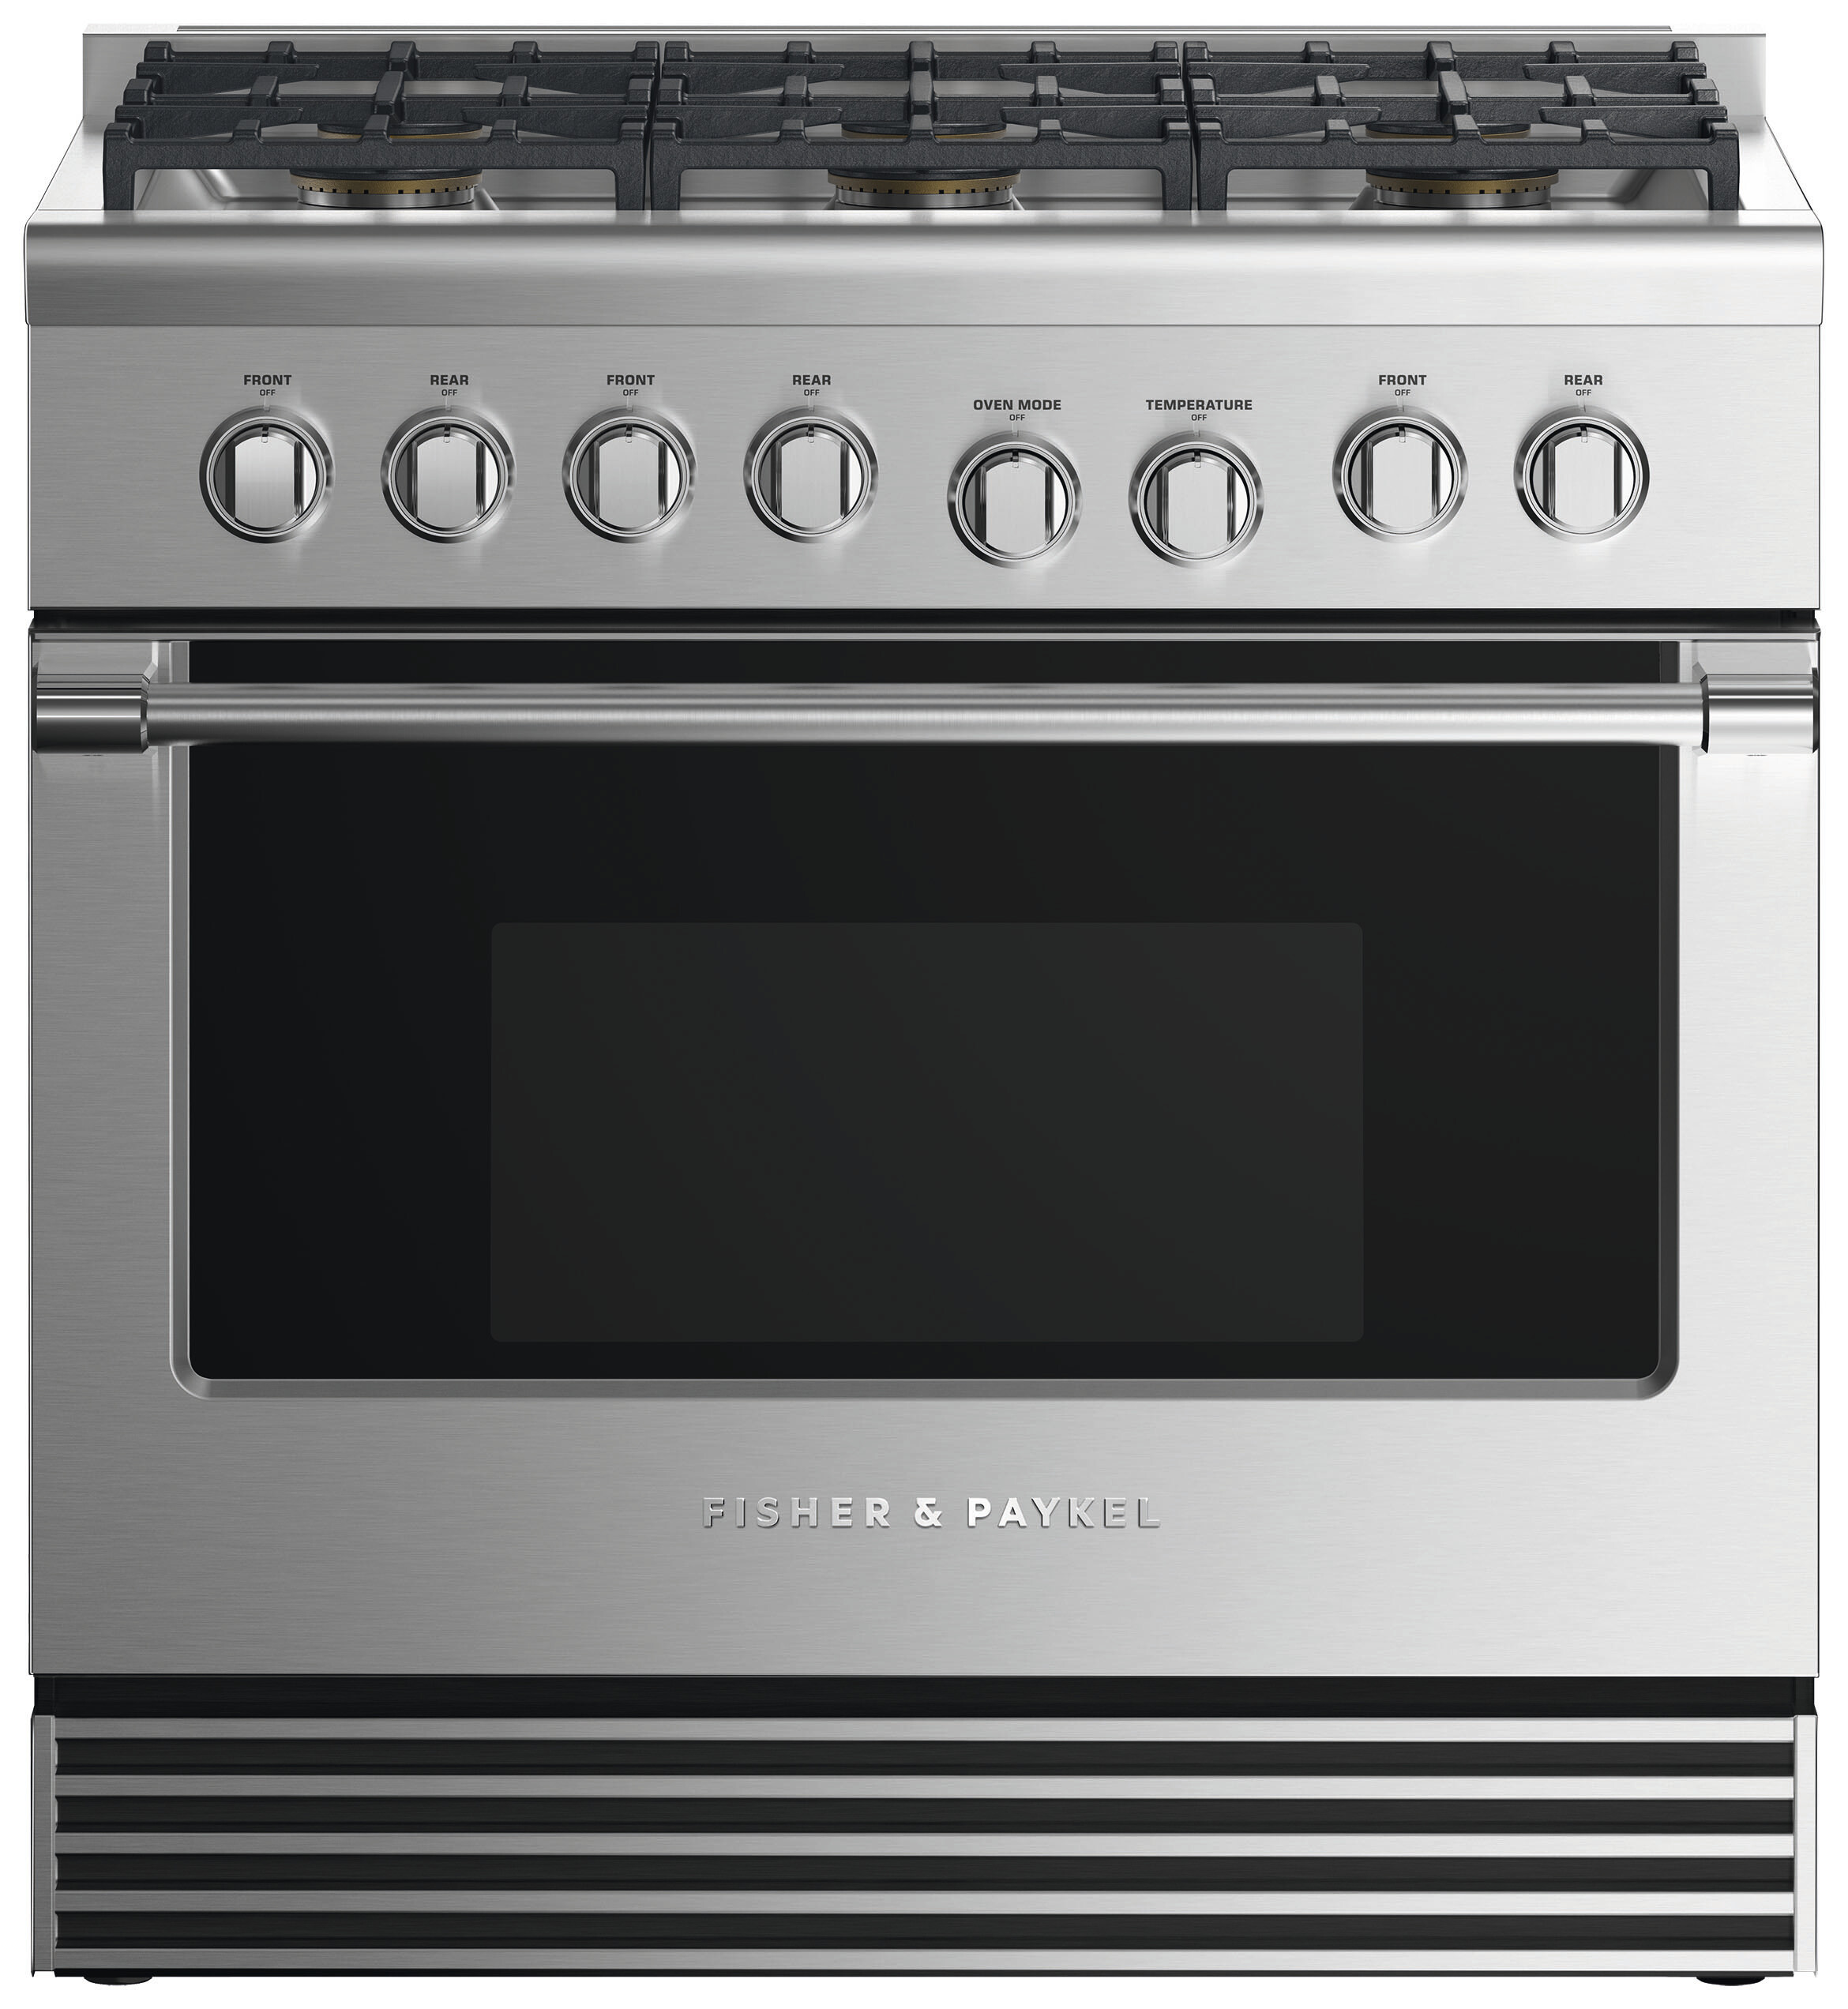 Fisher & Paykel Cooktop